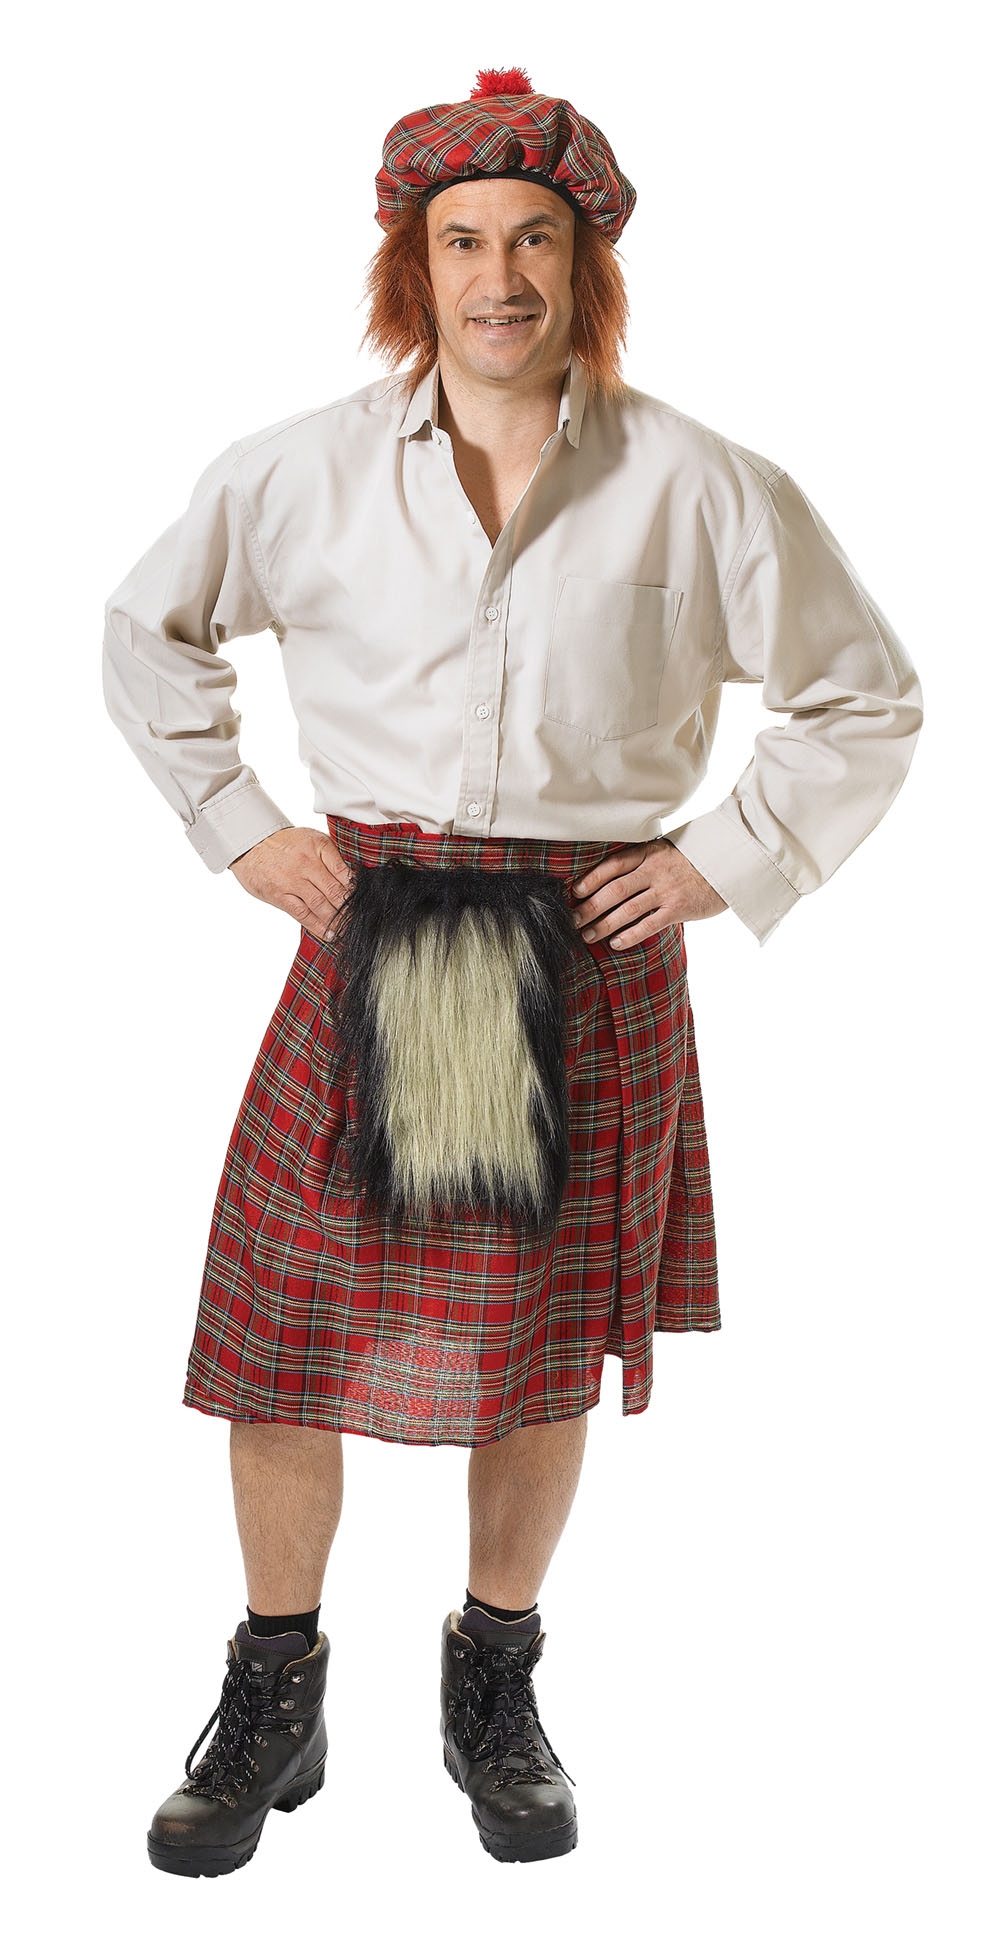 Mens Scottish Red Kilt Fancy Dress Costume Scot Scotl& Tartan Skirt Outfit New